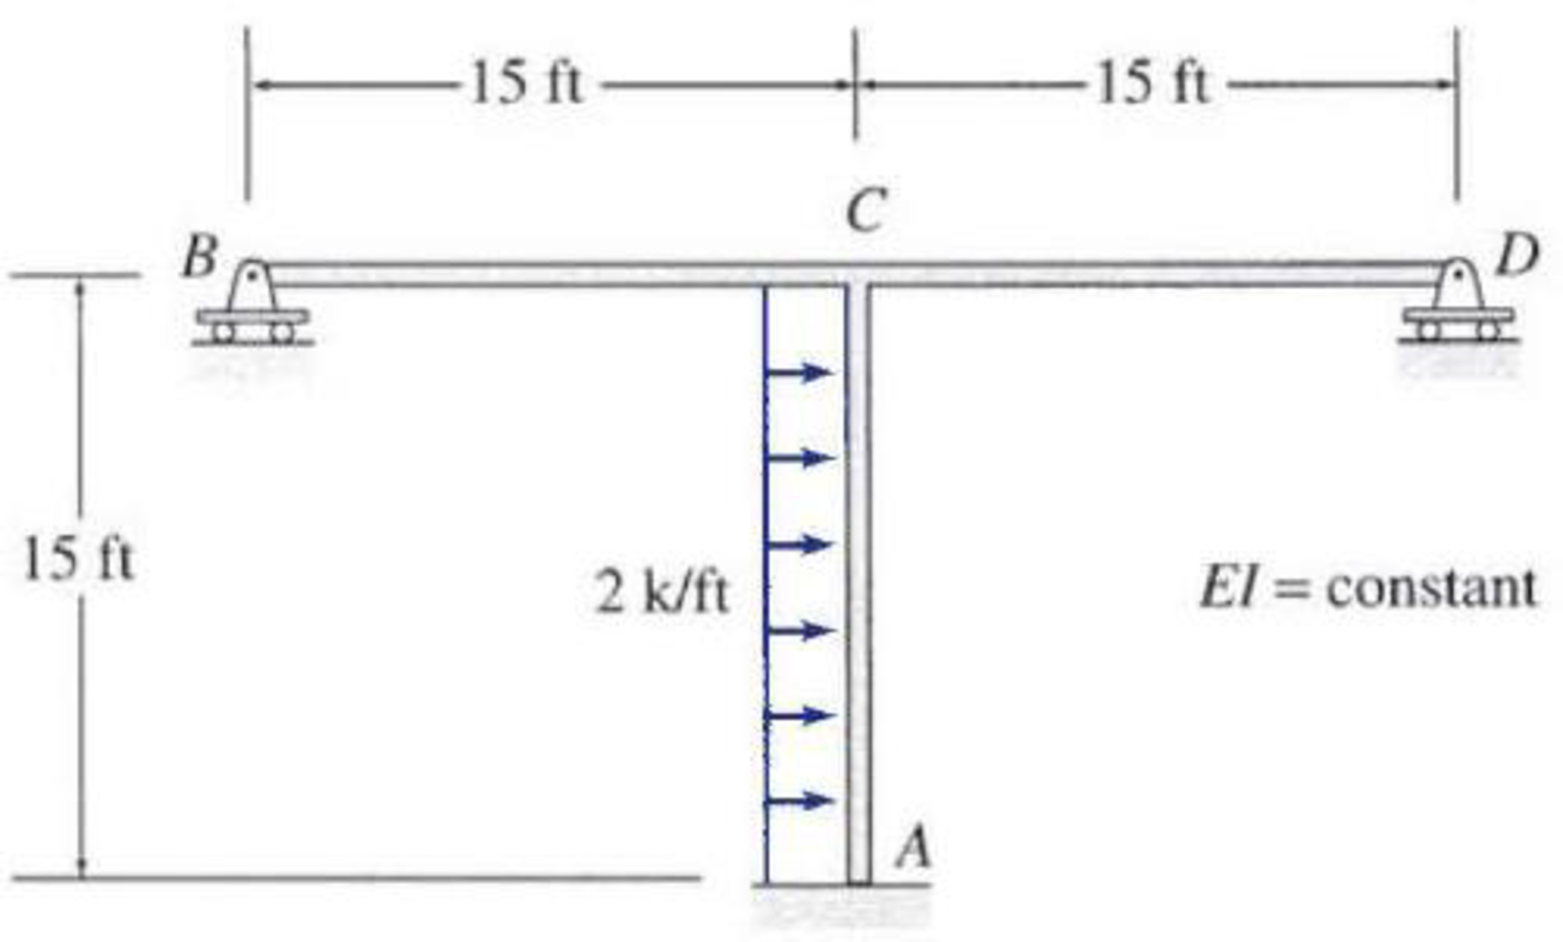 Chapter 13, Problem 25P, 13.13 through 13.25 Determine the reactions and draw the shear and bending moment diagrams for the